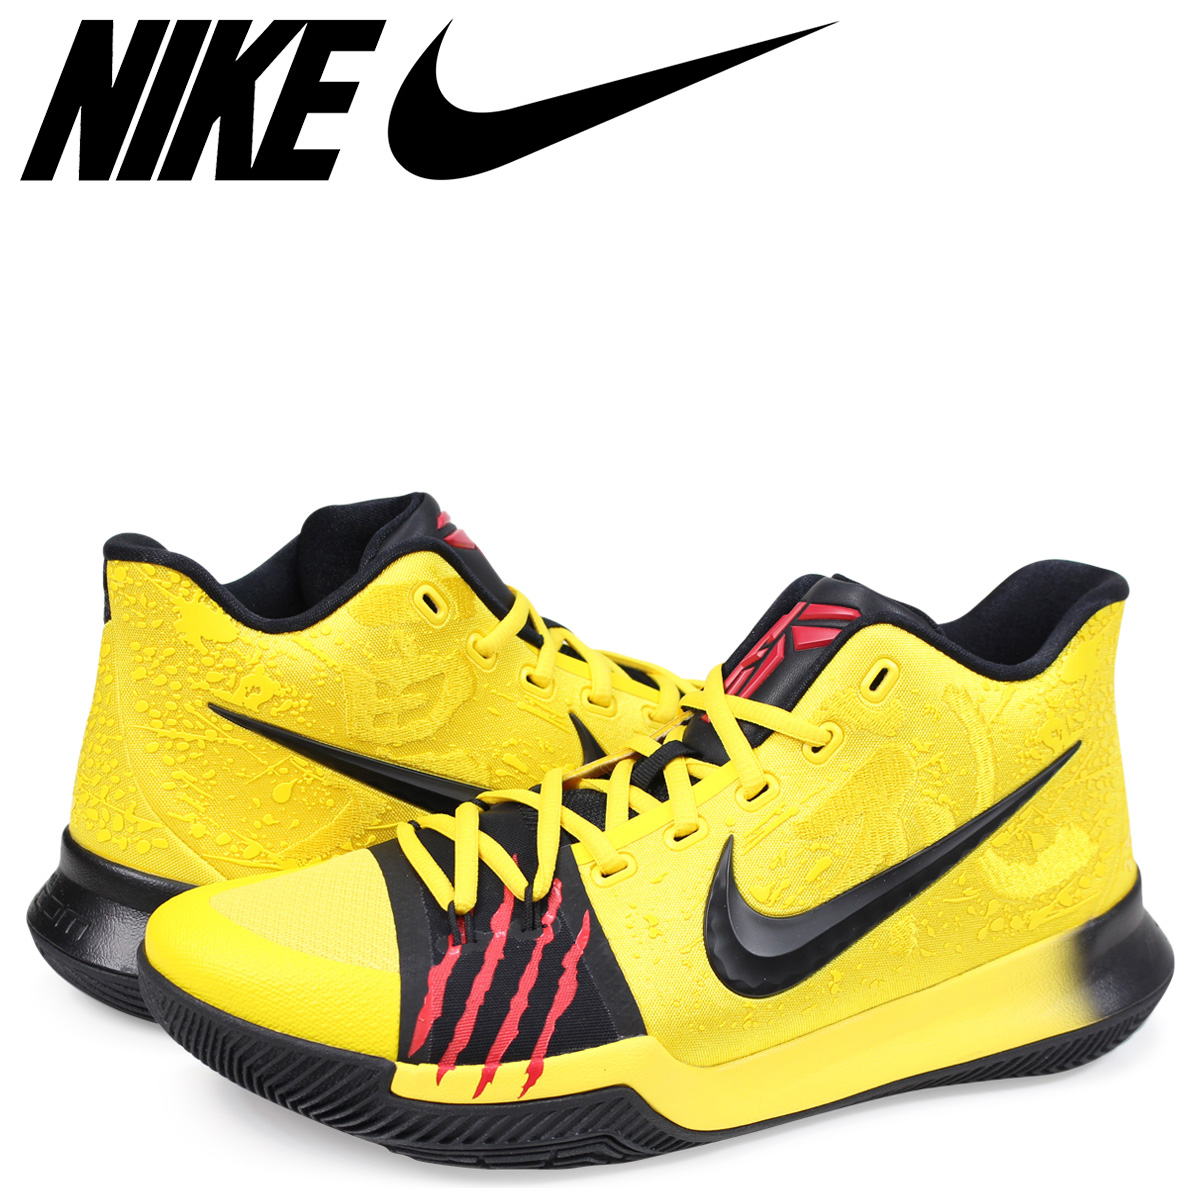 12d06904eb9b Nike NIKE chi Lee 3 sneakers men KYRIE 3 MAMBA MENTALITY EP BRUCE LEE  AJ1692-700 yellow